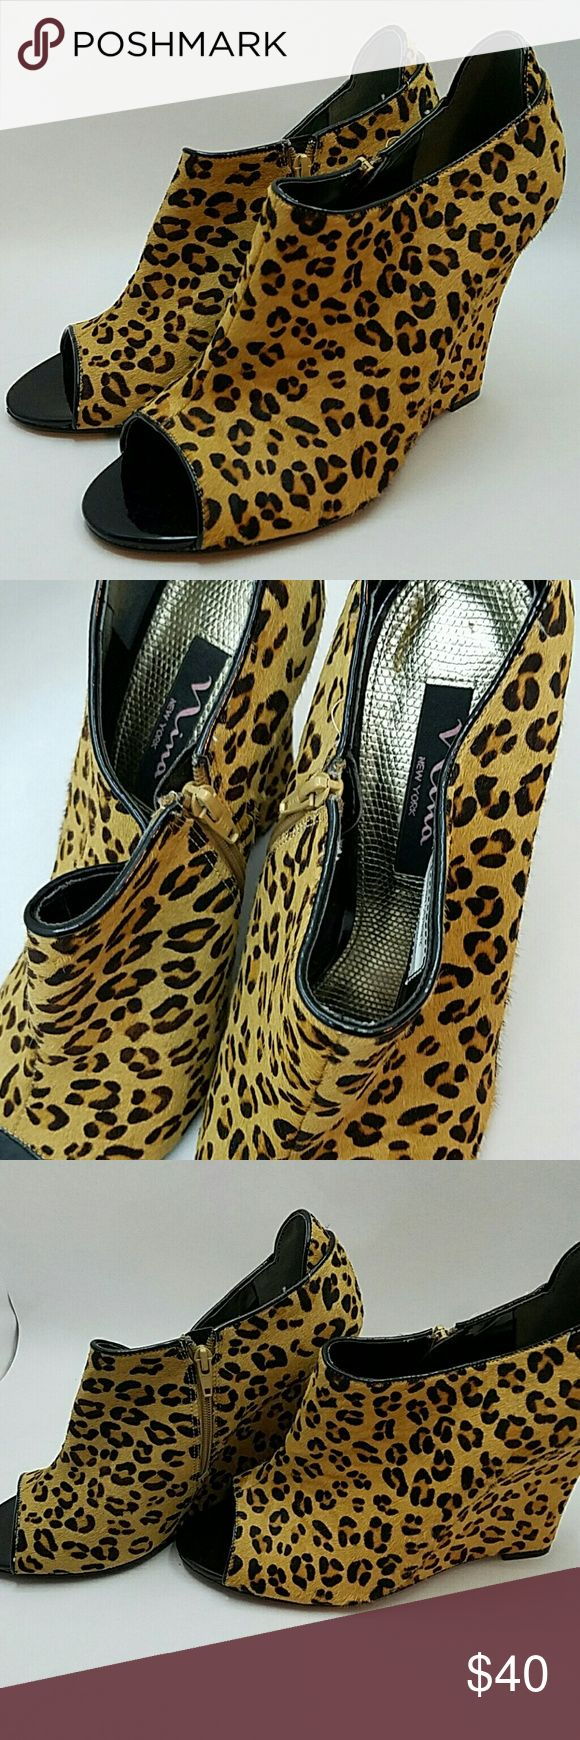 Nina New York calfskin animal print wedges These designer peep toe wedges are classy and edgy meaning you can wear them with a preppy cardigan or a leather jacket! Dress them up or pair them with professional attire for work, a LBD for the club, or some jeans for everyday wear: they're so versatile!! Nice to the touch, they're made from real calfskin fur and feature the always popular cheetah print. Super comfortable the inside is soft and padded and zips up the side for easy on/off. Nina…